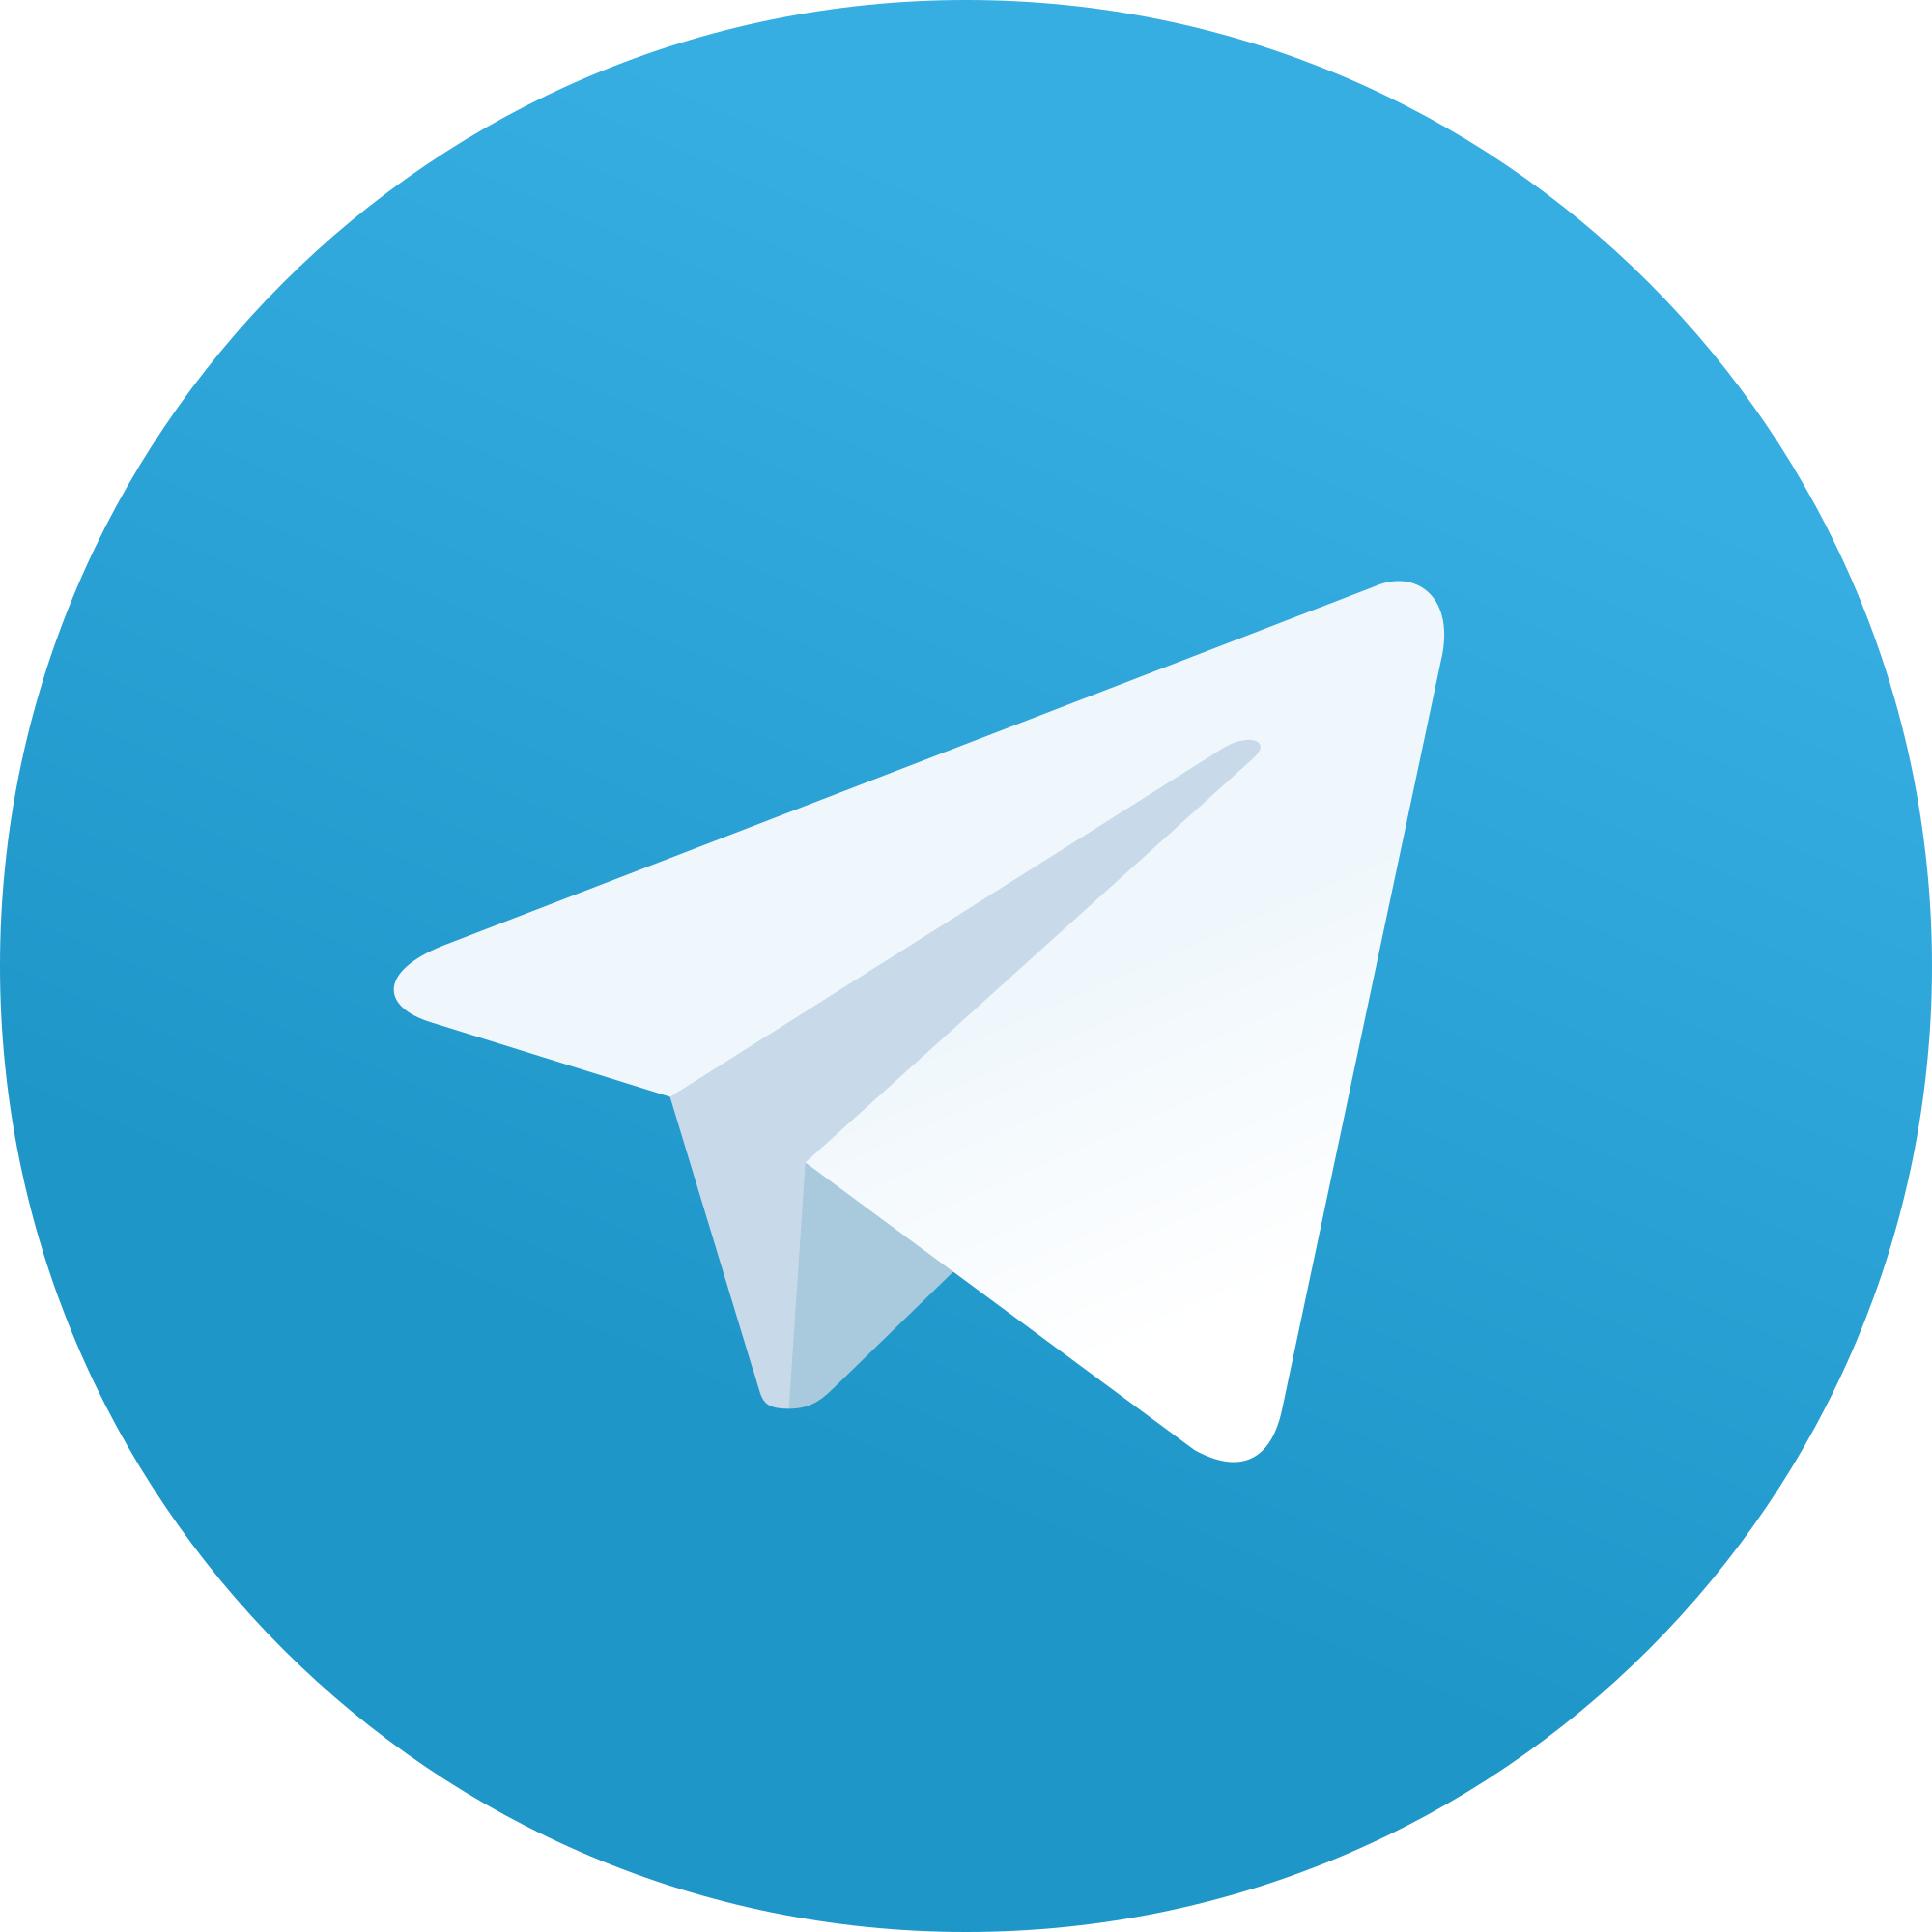 ✅ Promotion in Telegram